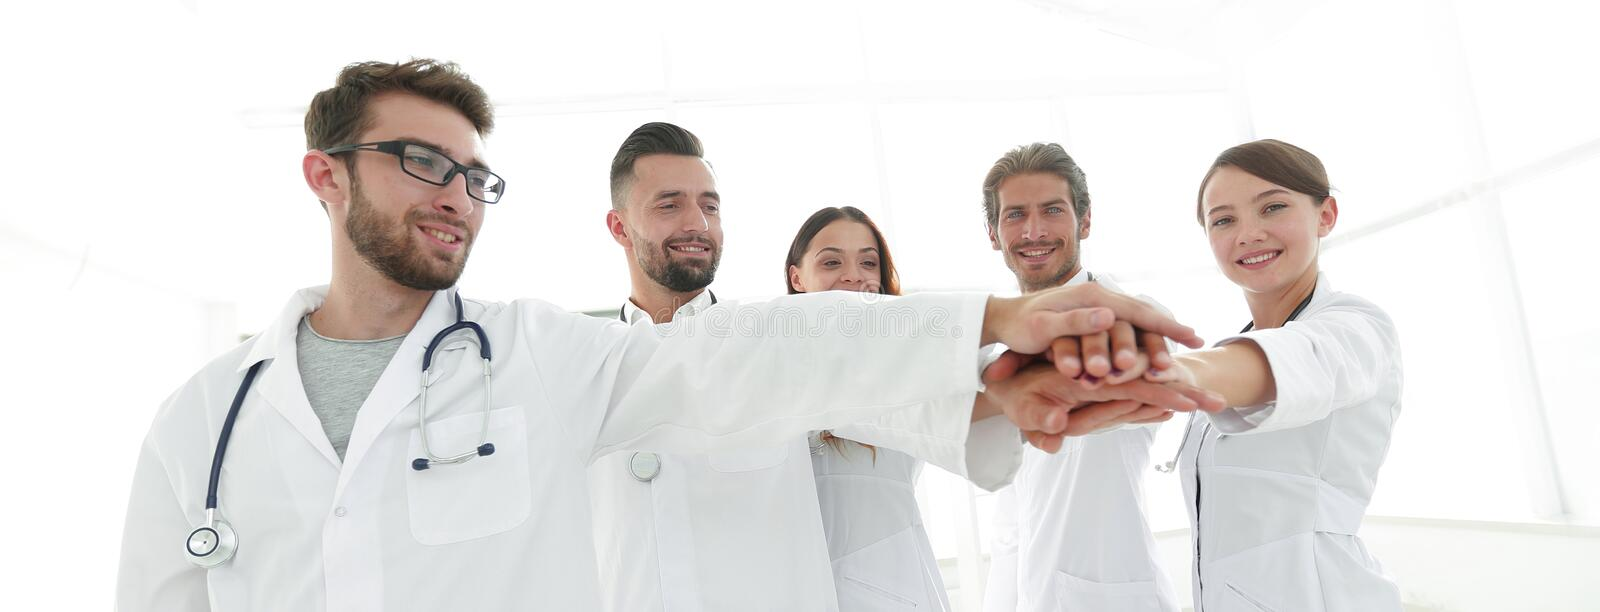 Doctors and nurses in a medical team stacking hands royalty free stock photo